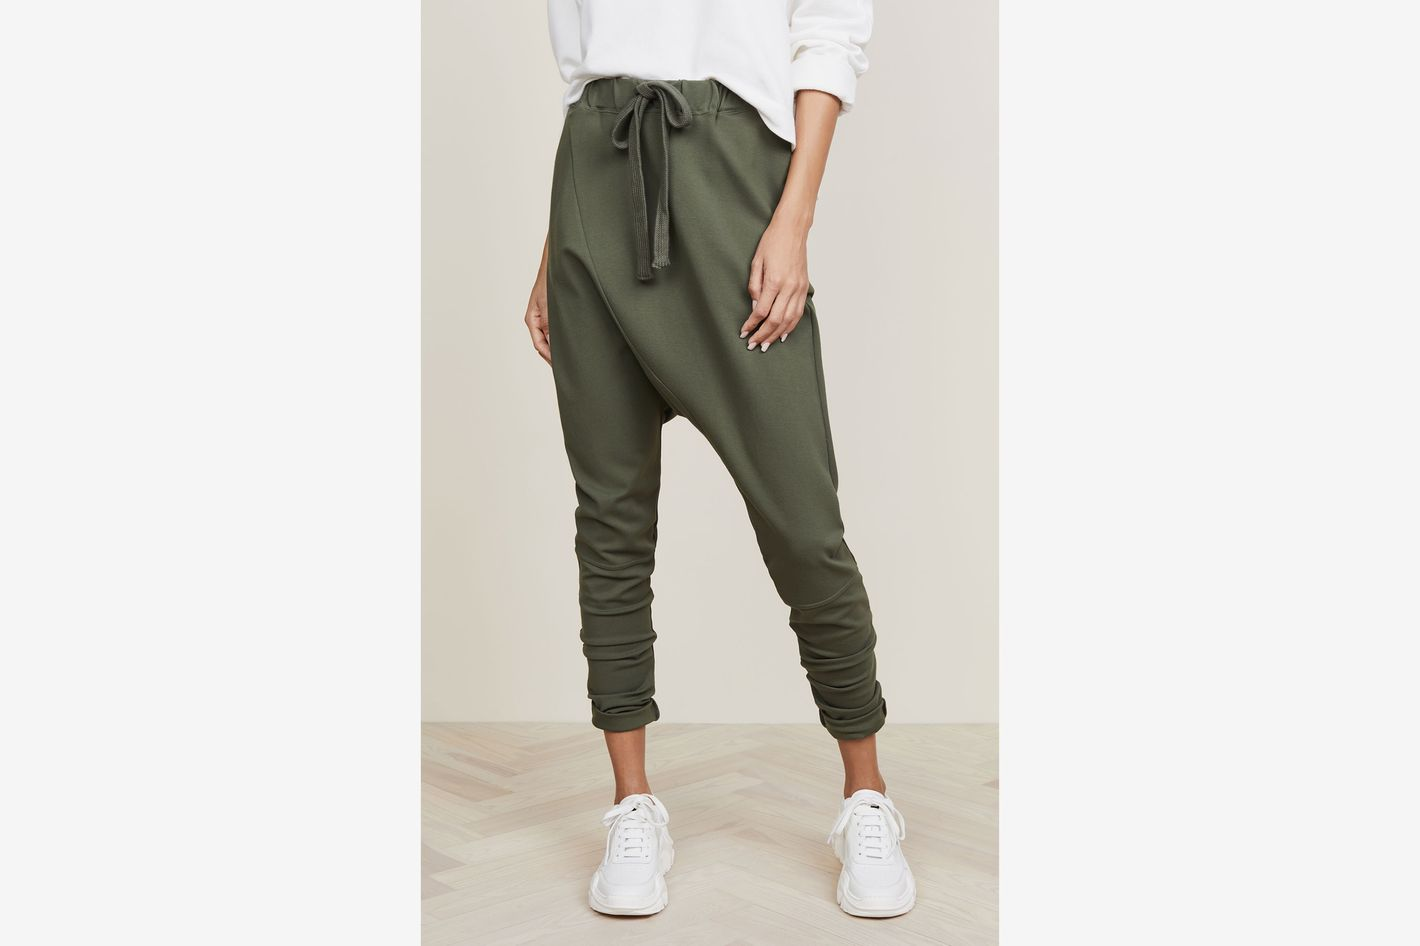 6b8925c49 The 26 Best Travel Pants for Women 2018